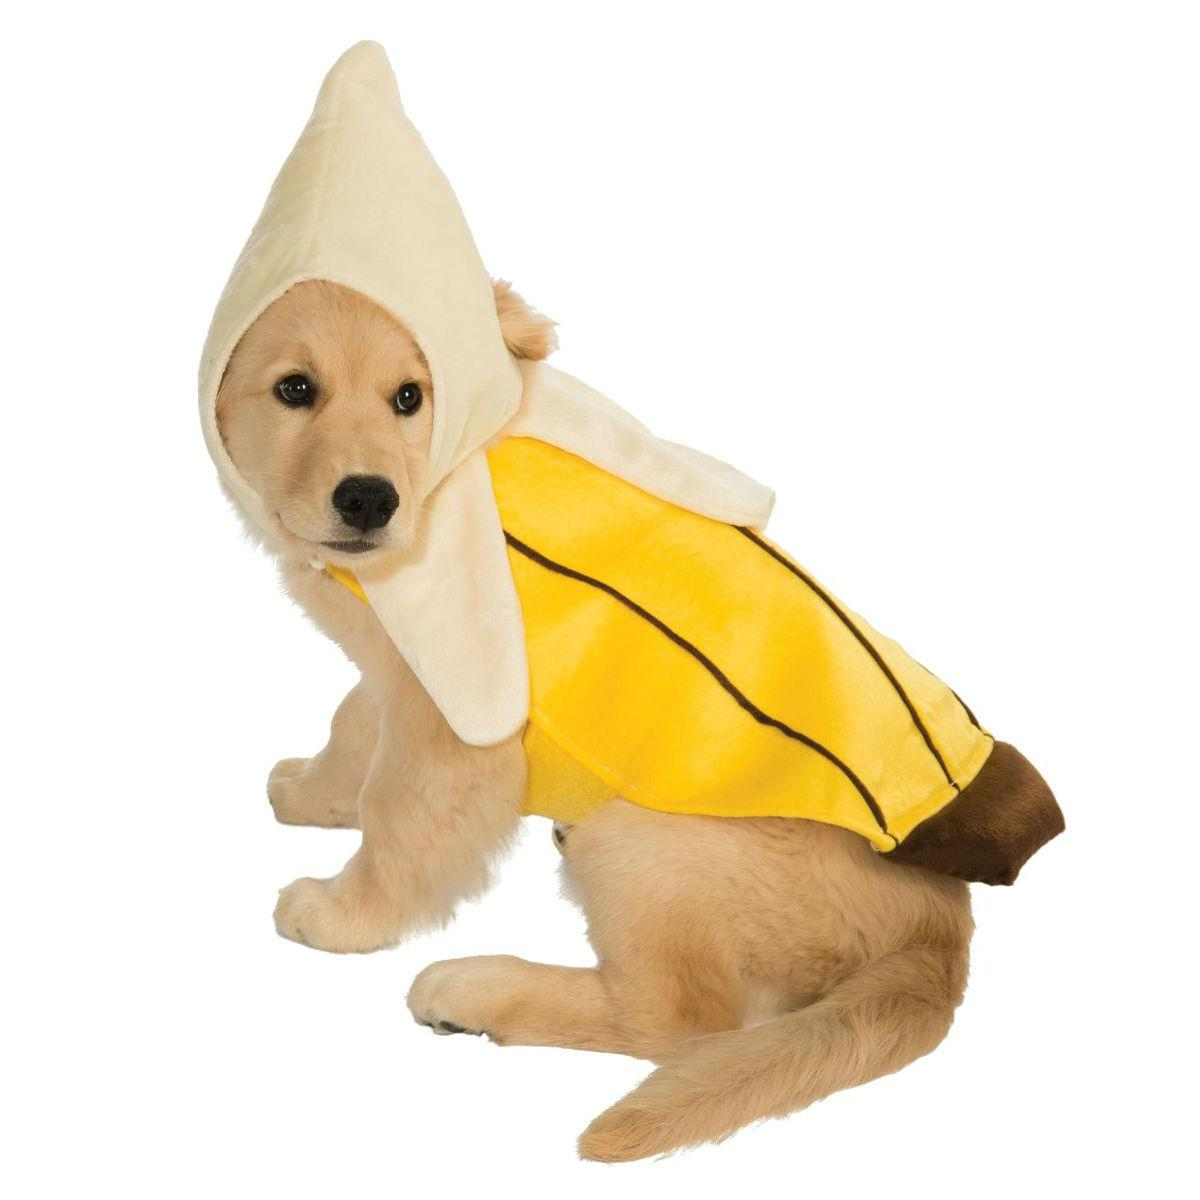 Banana Dog Costume by Rubies